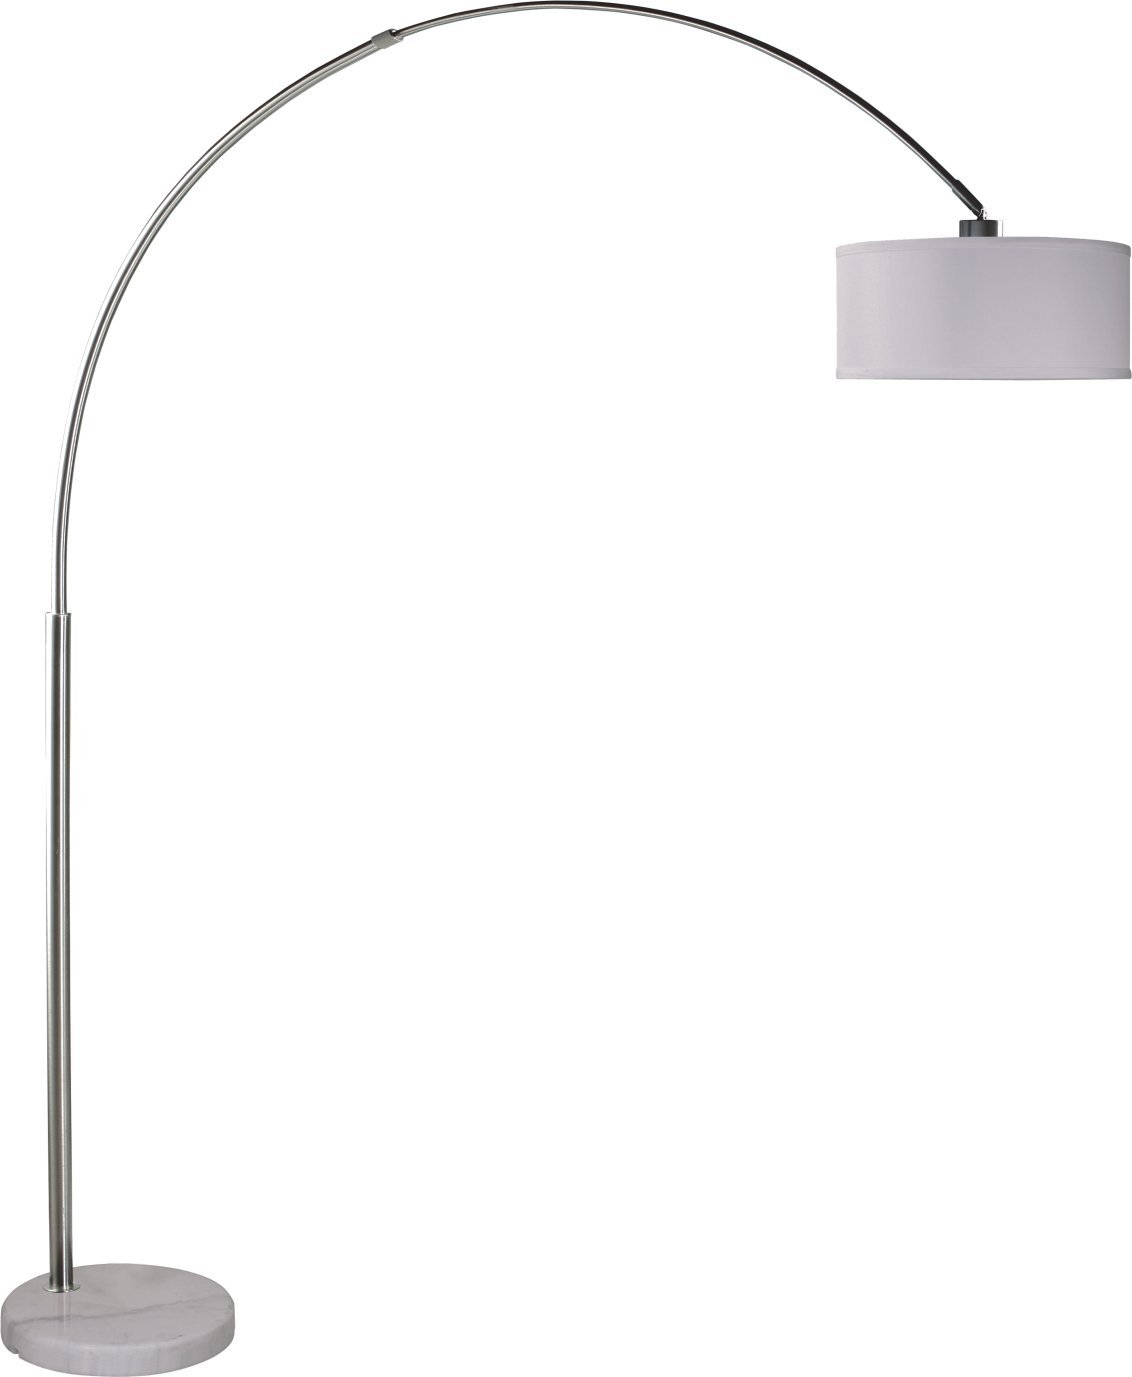 Amazon.com: Milton Greens Stars Sophia Adjustable Arc Floor Lamp With  Marble Base, 81 Inch: Home U0026 Kitchen